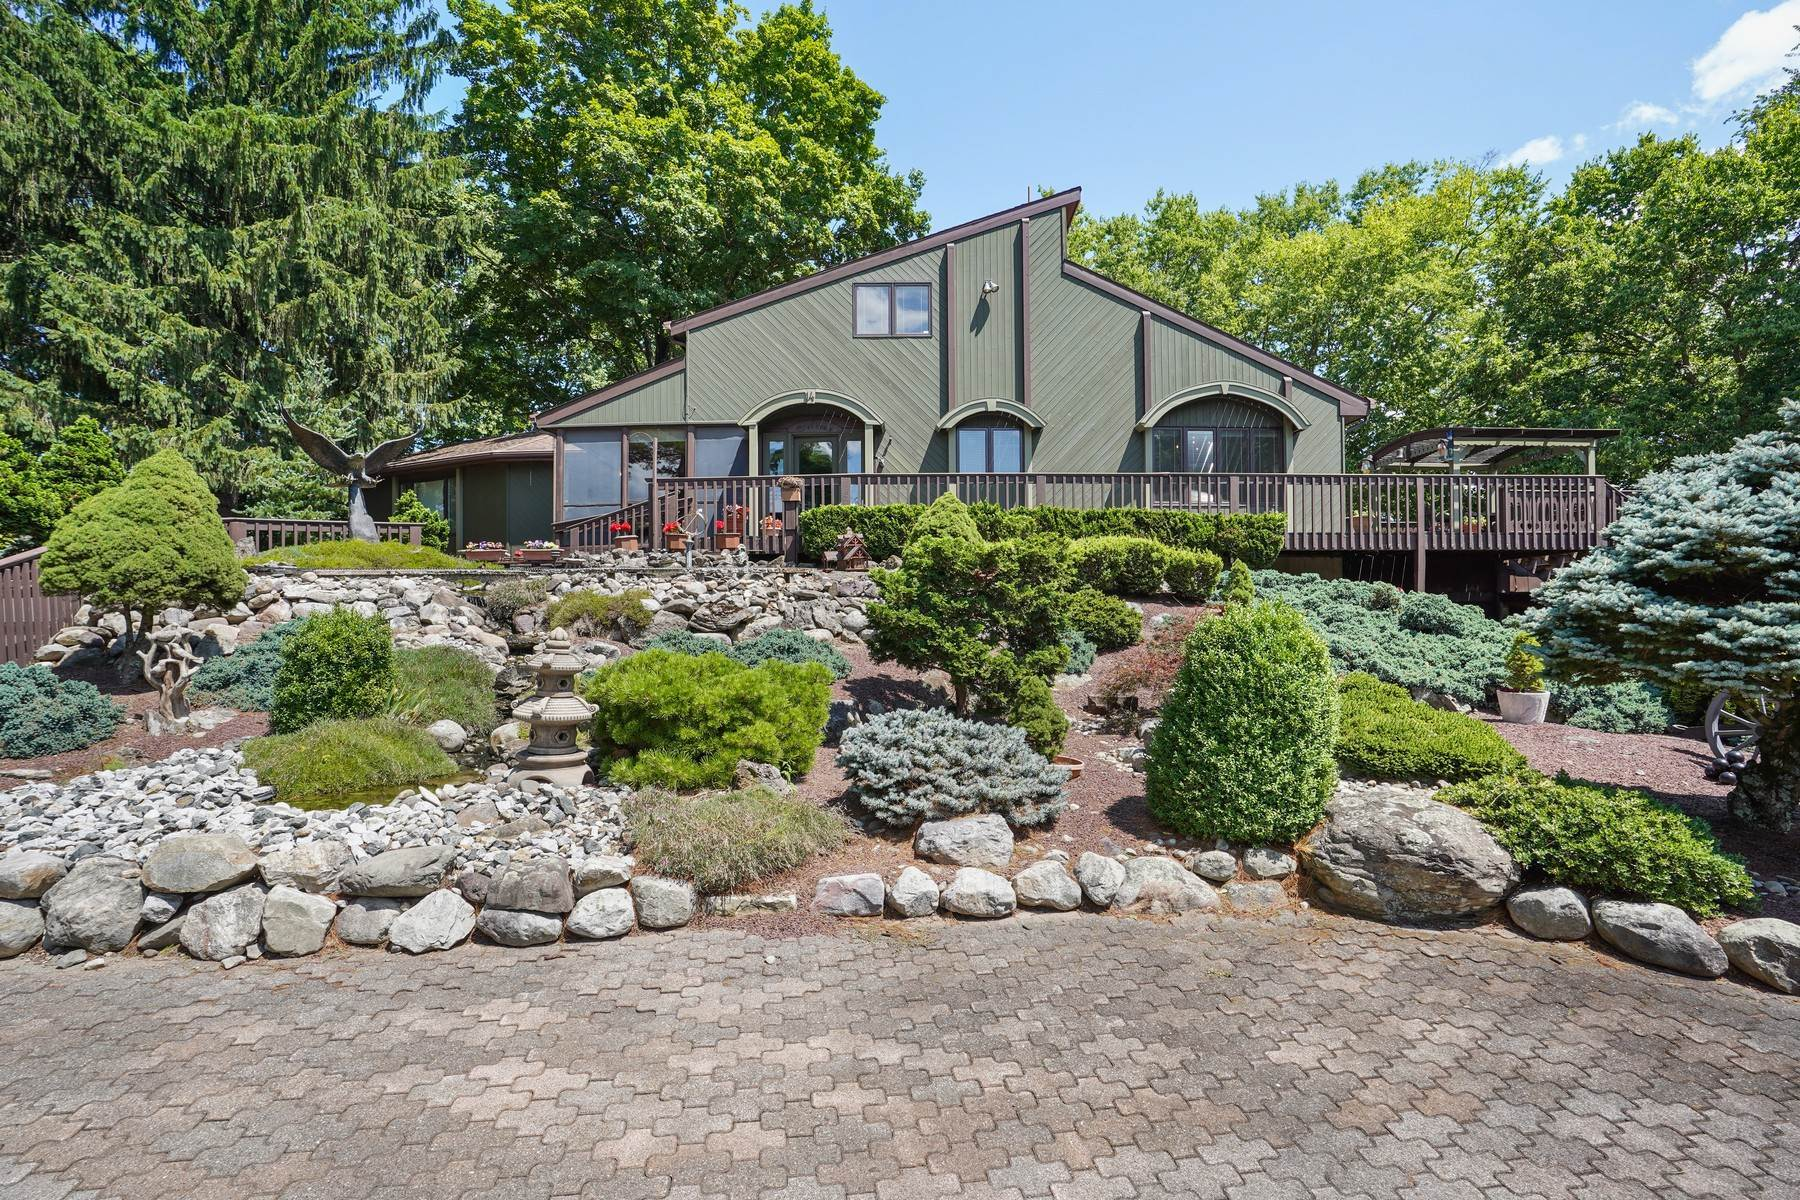 Single Family Homes for Sale at Beautiful Custom Home Surrounded by Nature 14 Noe Road Blairstown, New Jersey 07825 United States